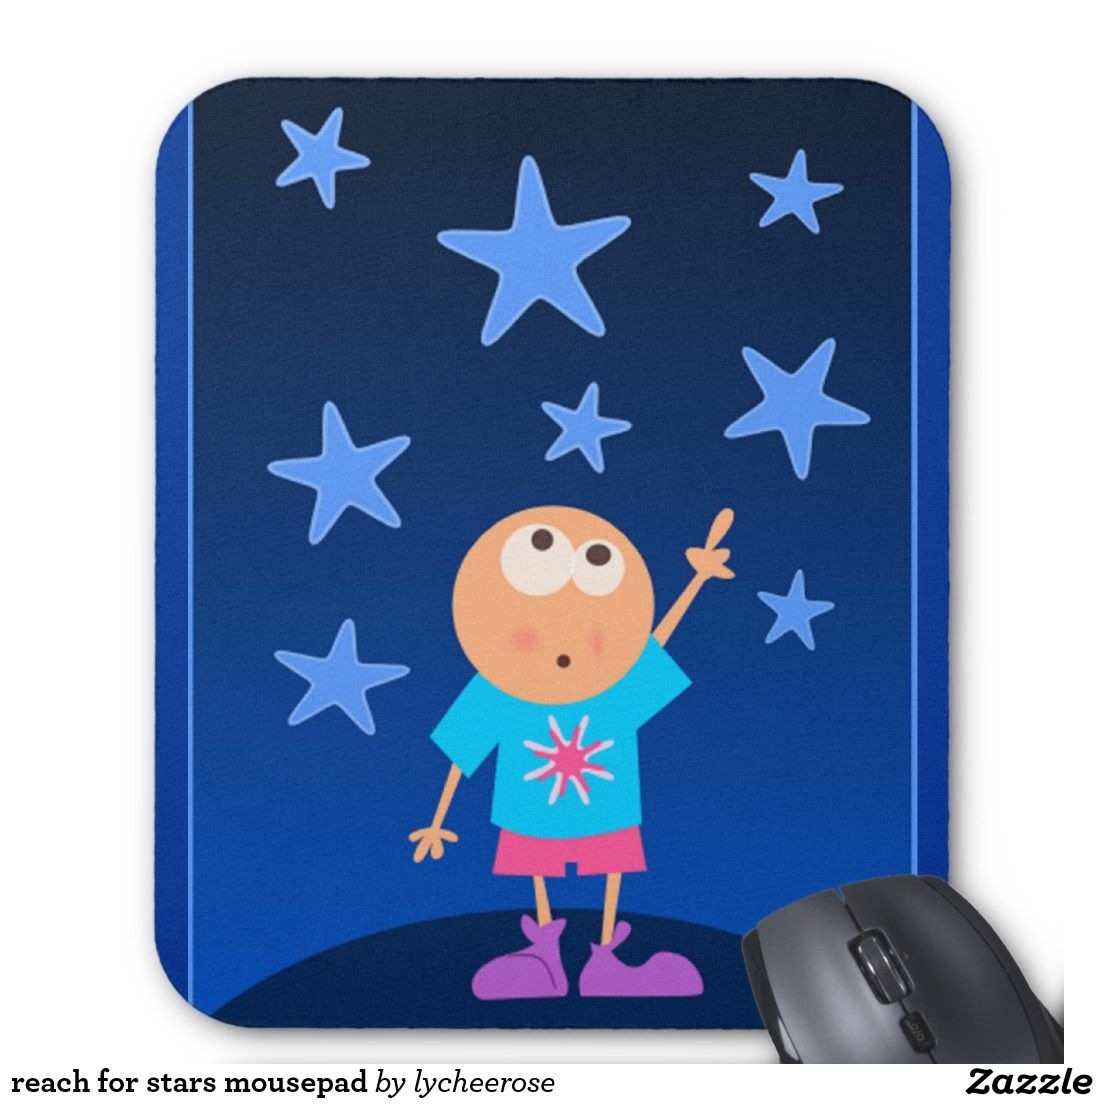 reach for stars mousepad